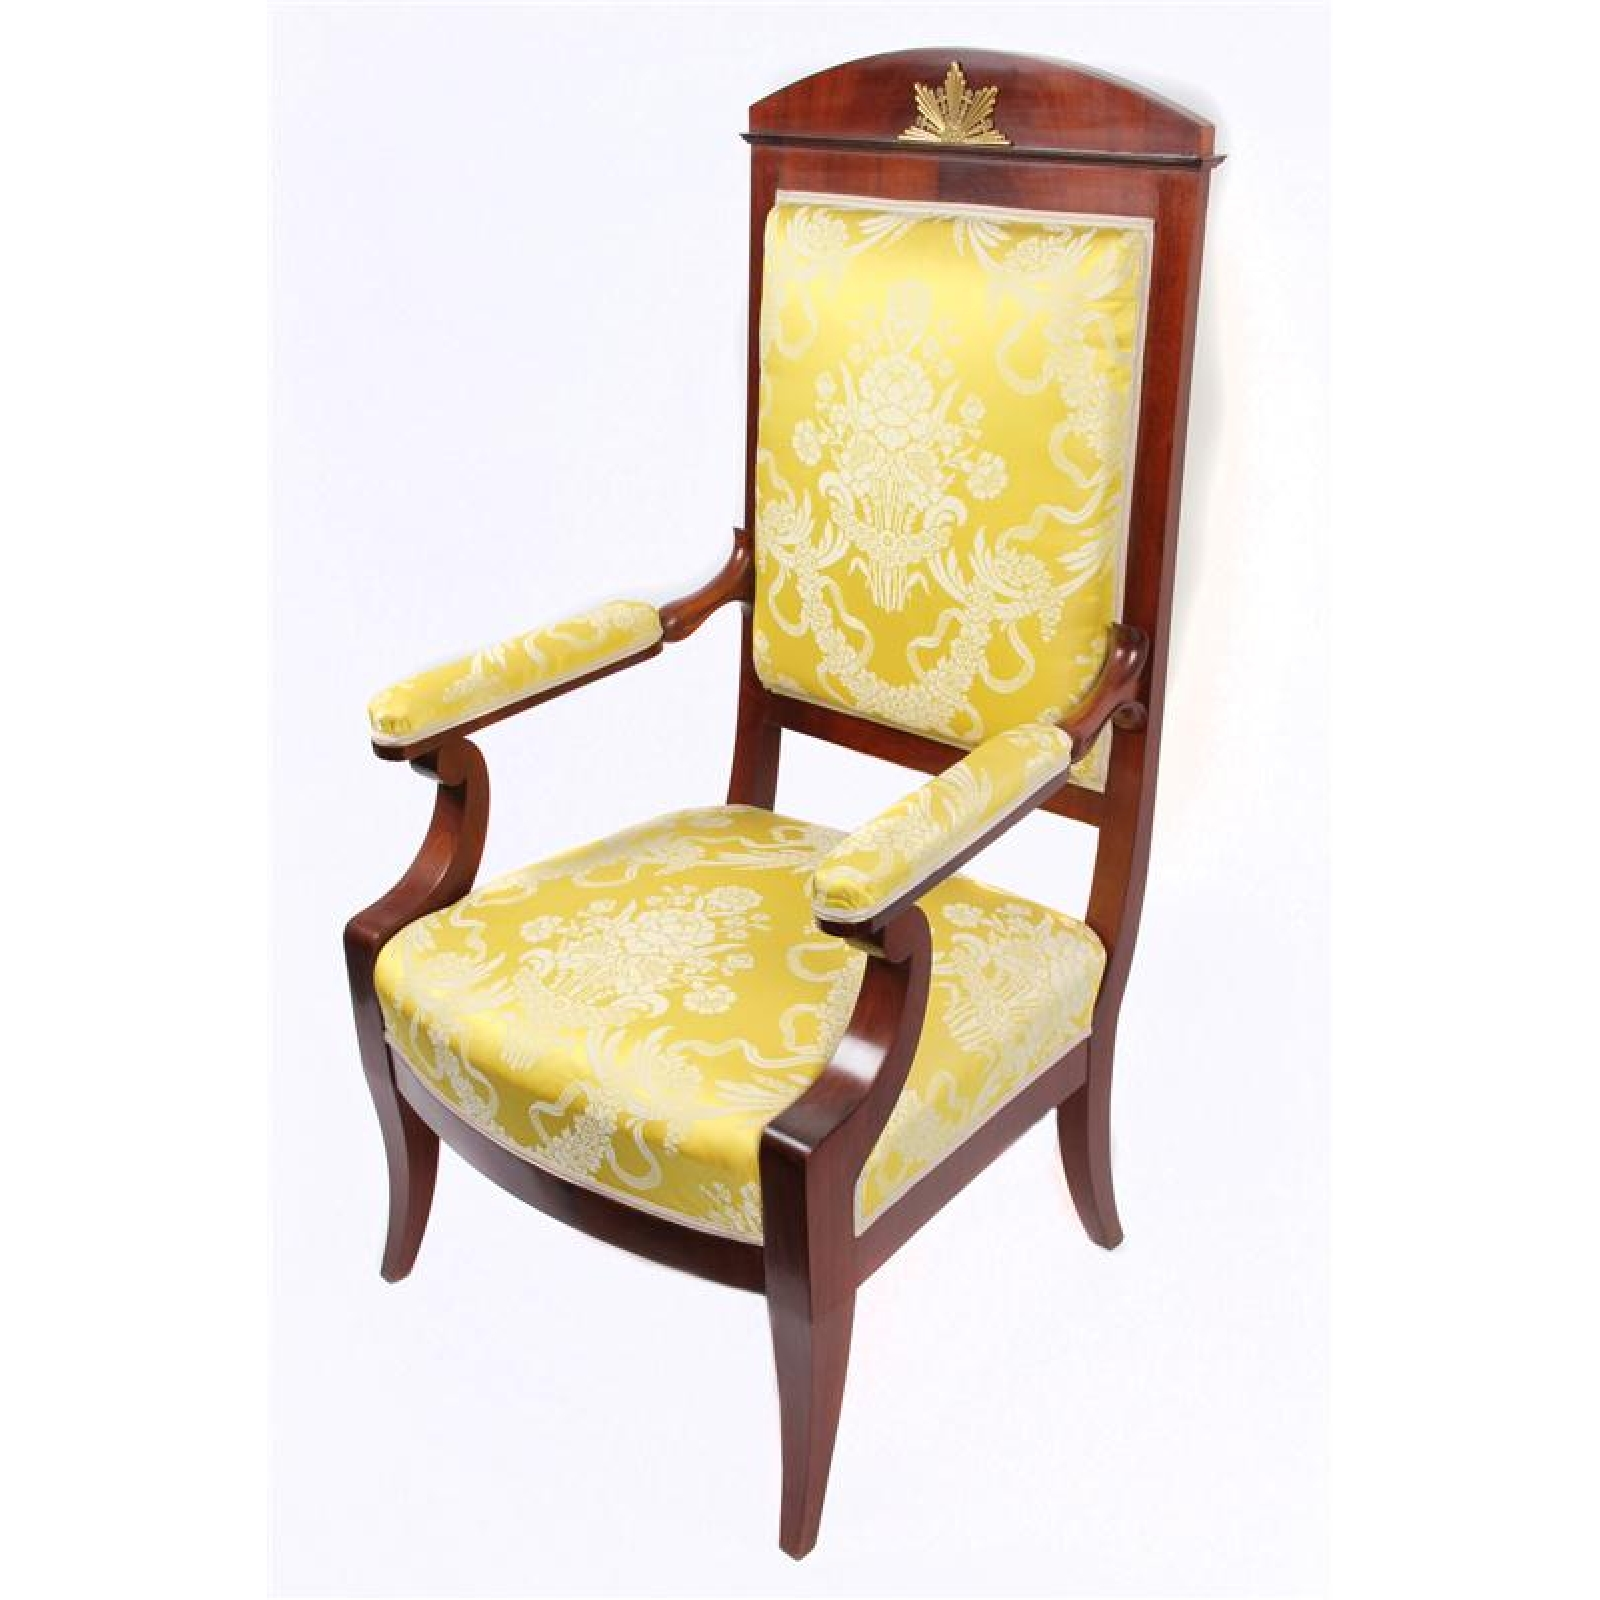 Sessel Biedermeier Biedermeier Sessel Thurn Taxis Antikhaus Insam